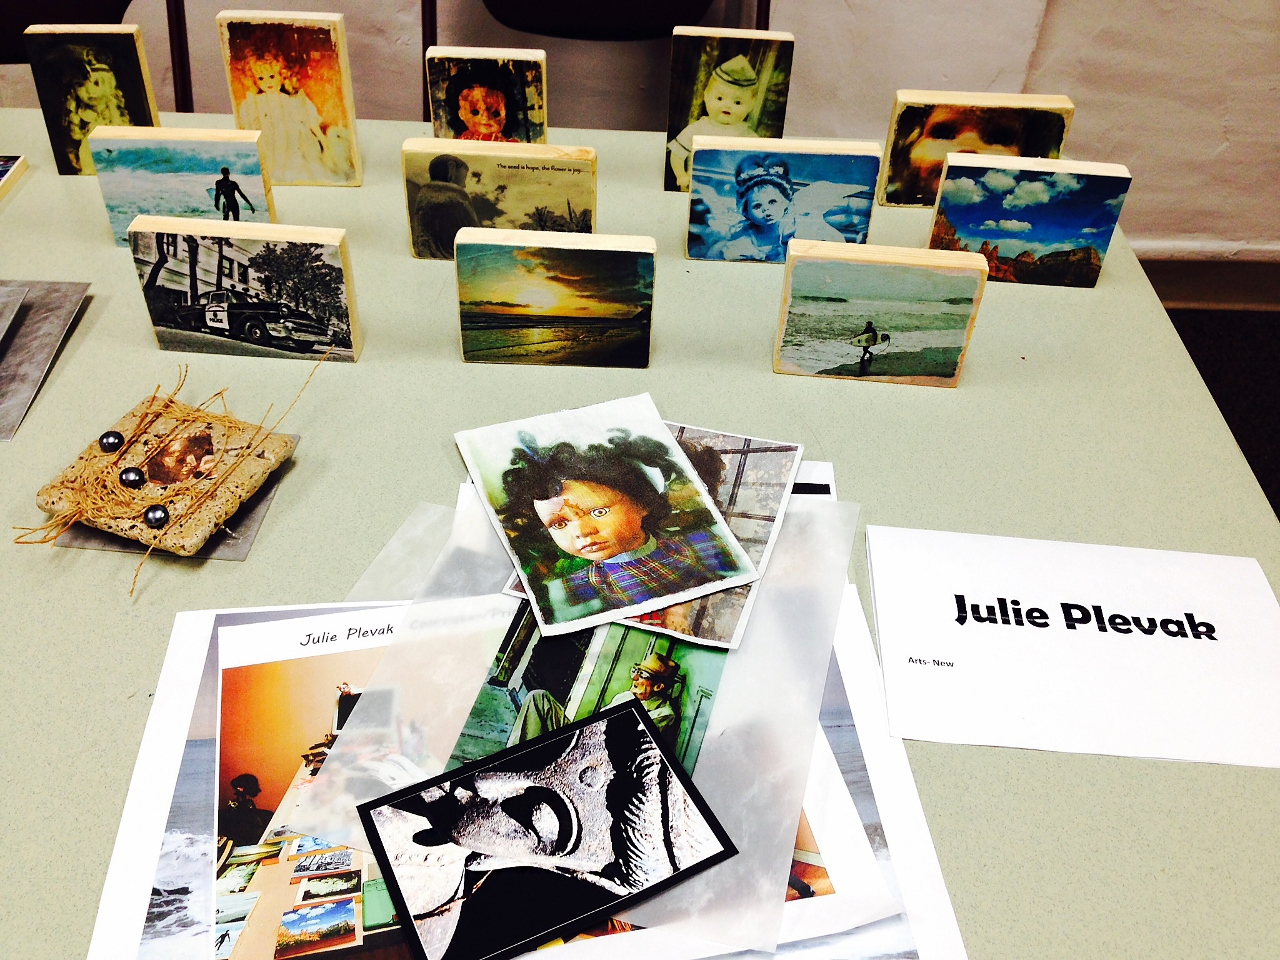 Photos waiting to be screened for art show